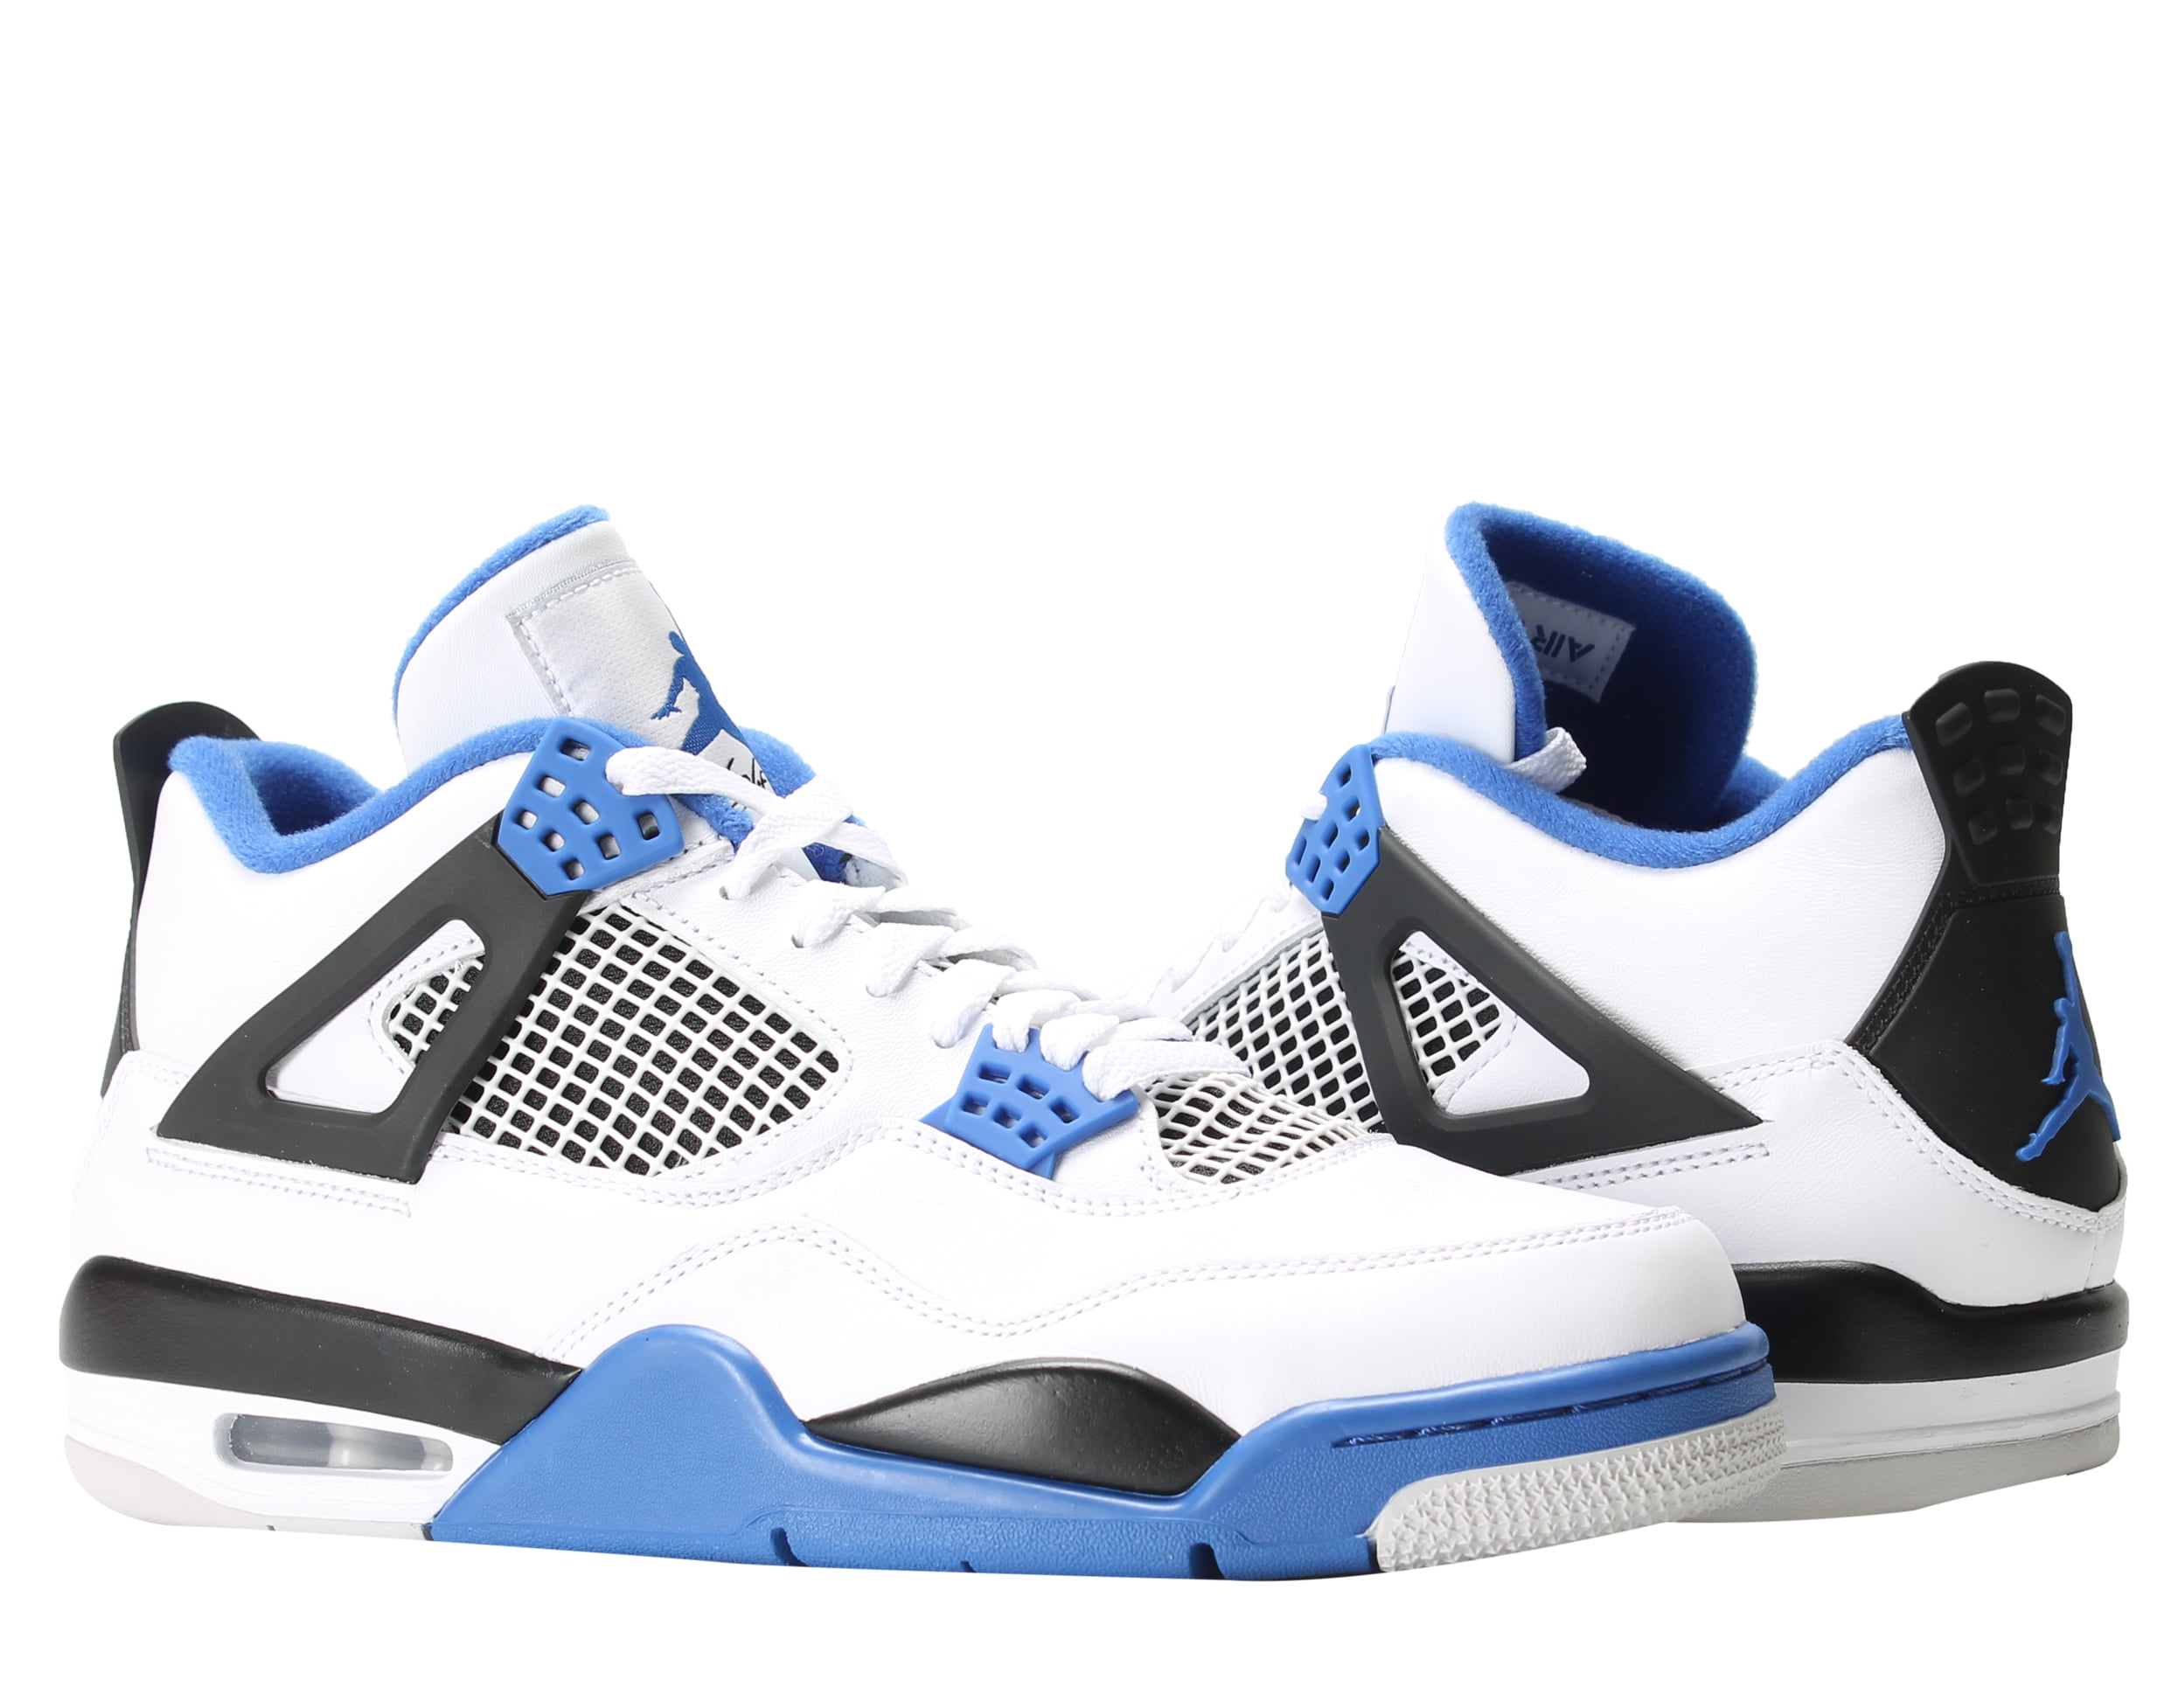 factory authentic afce6 93b9a cheapest nike air jordan 4 retro motorsports blue mens basketball shoes  308497 117 57904 c6dc1